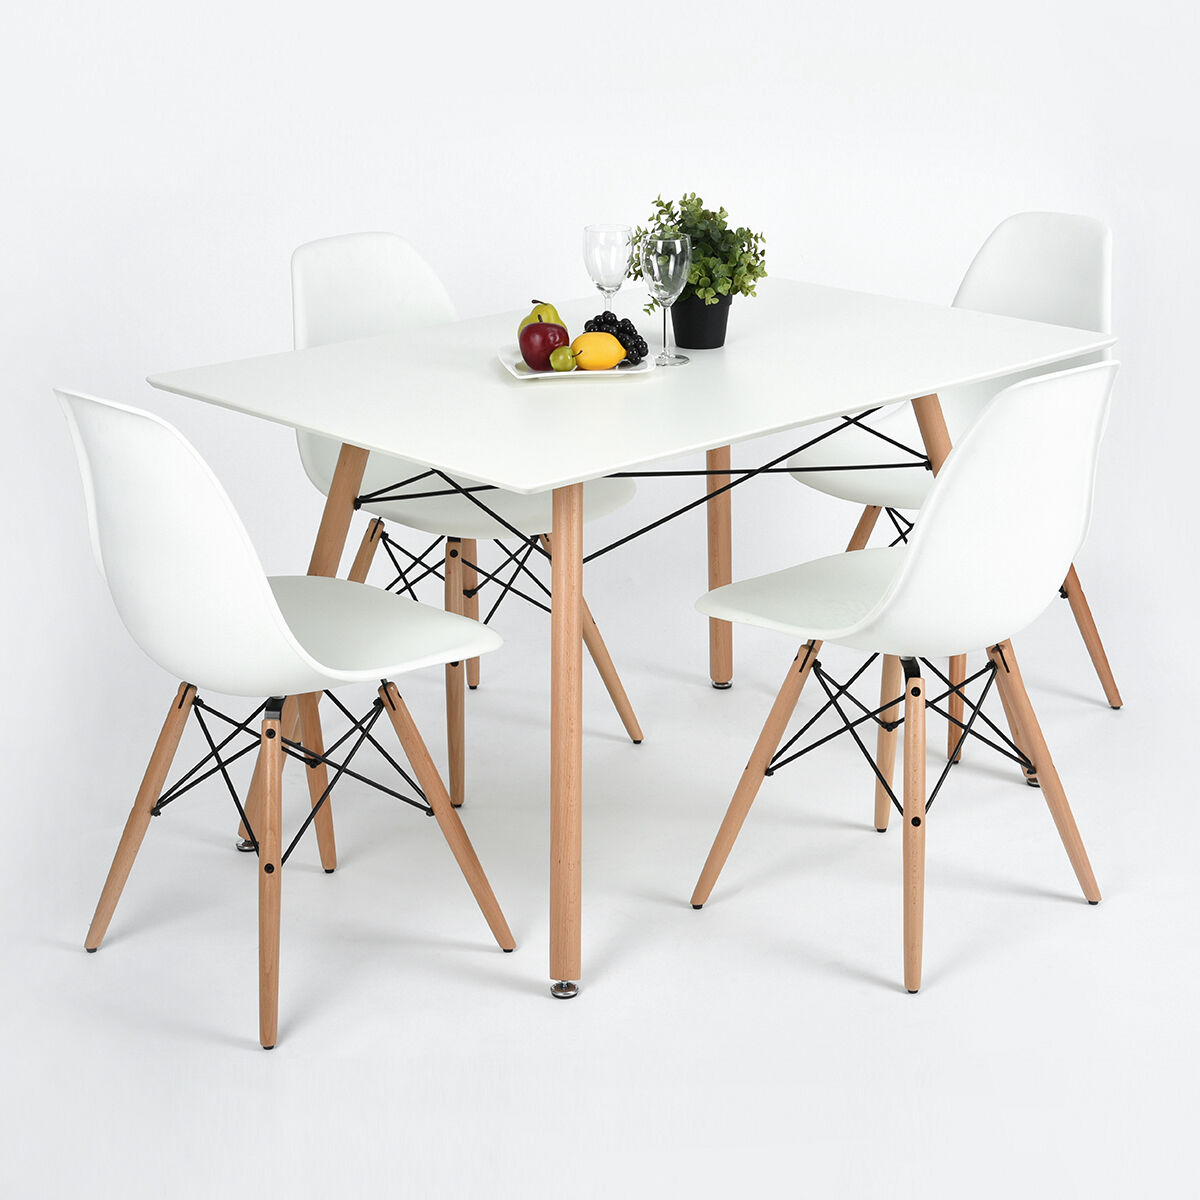 120cm dining table 4 chairs home fashion furniture white for Dining room table for 4